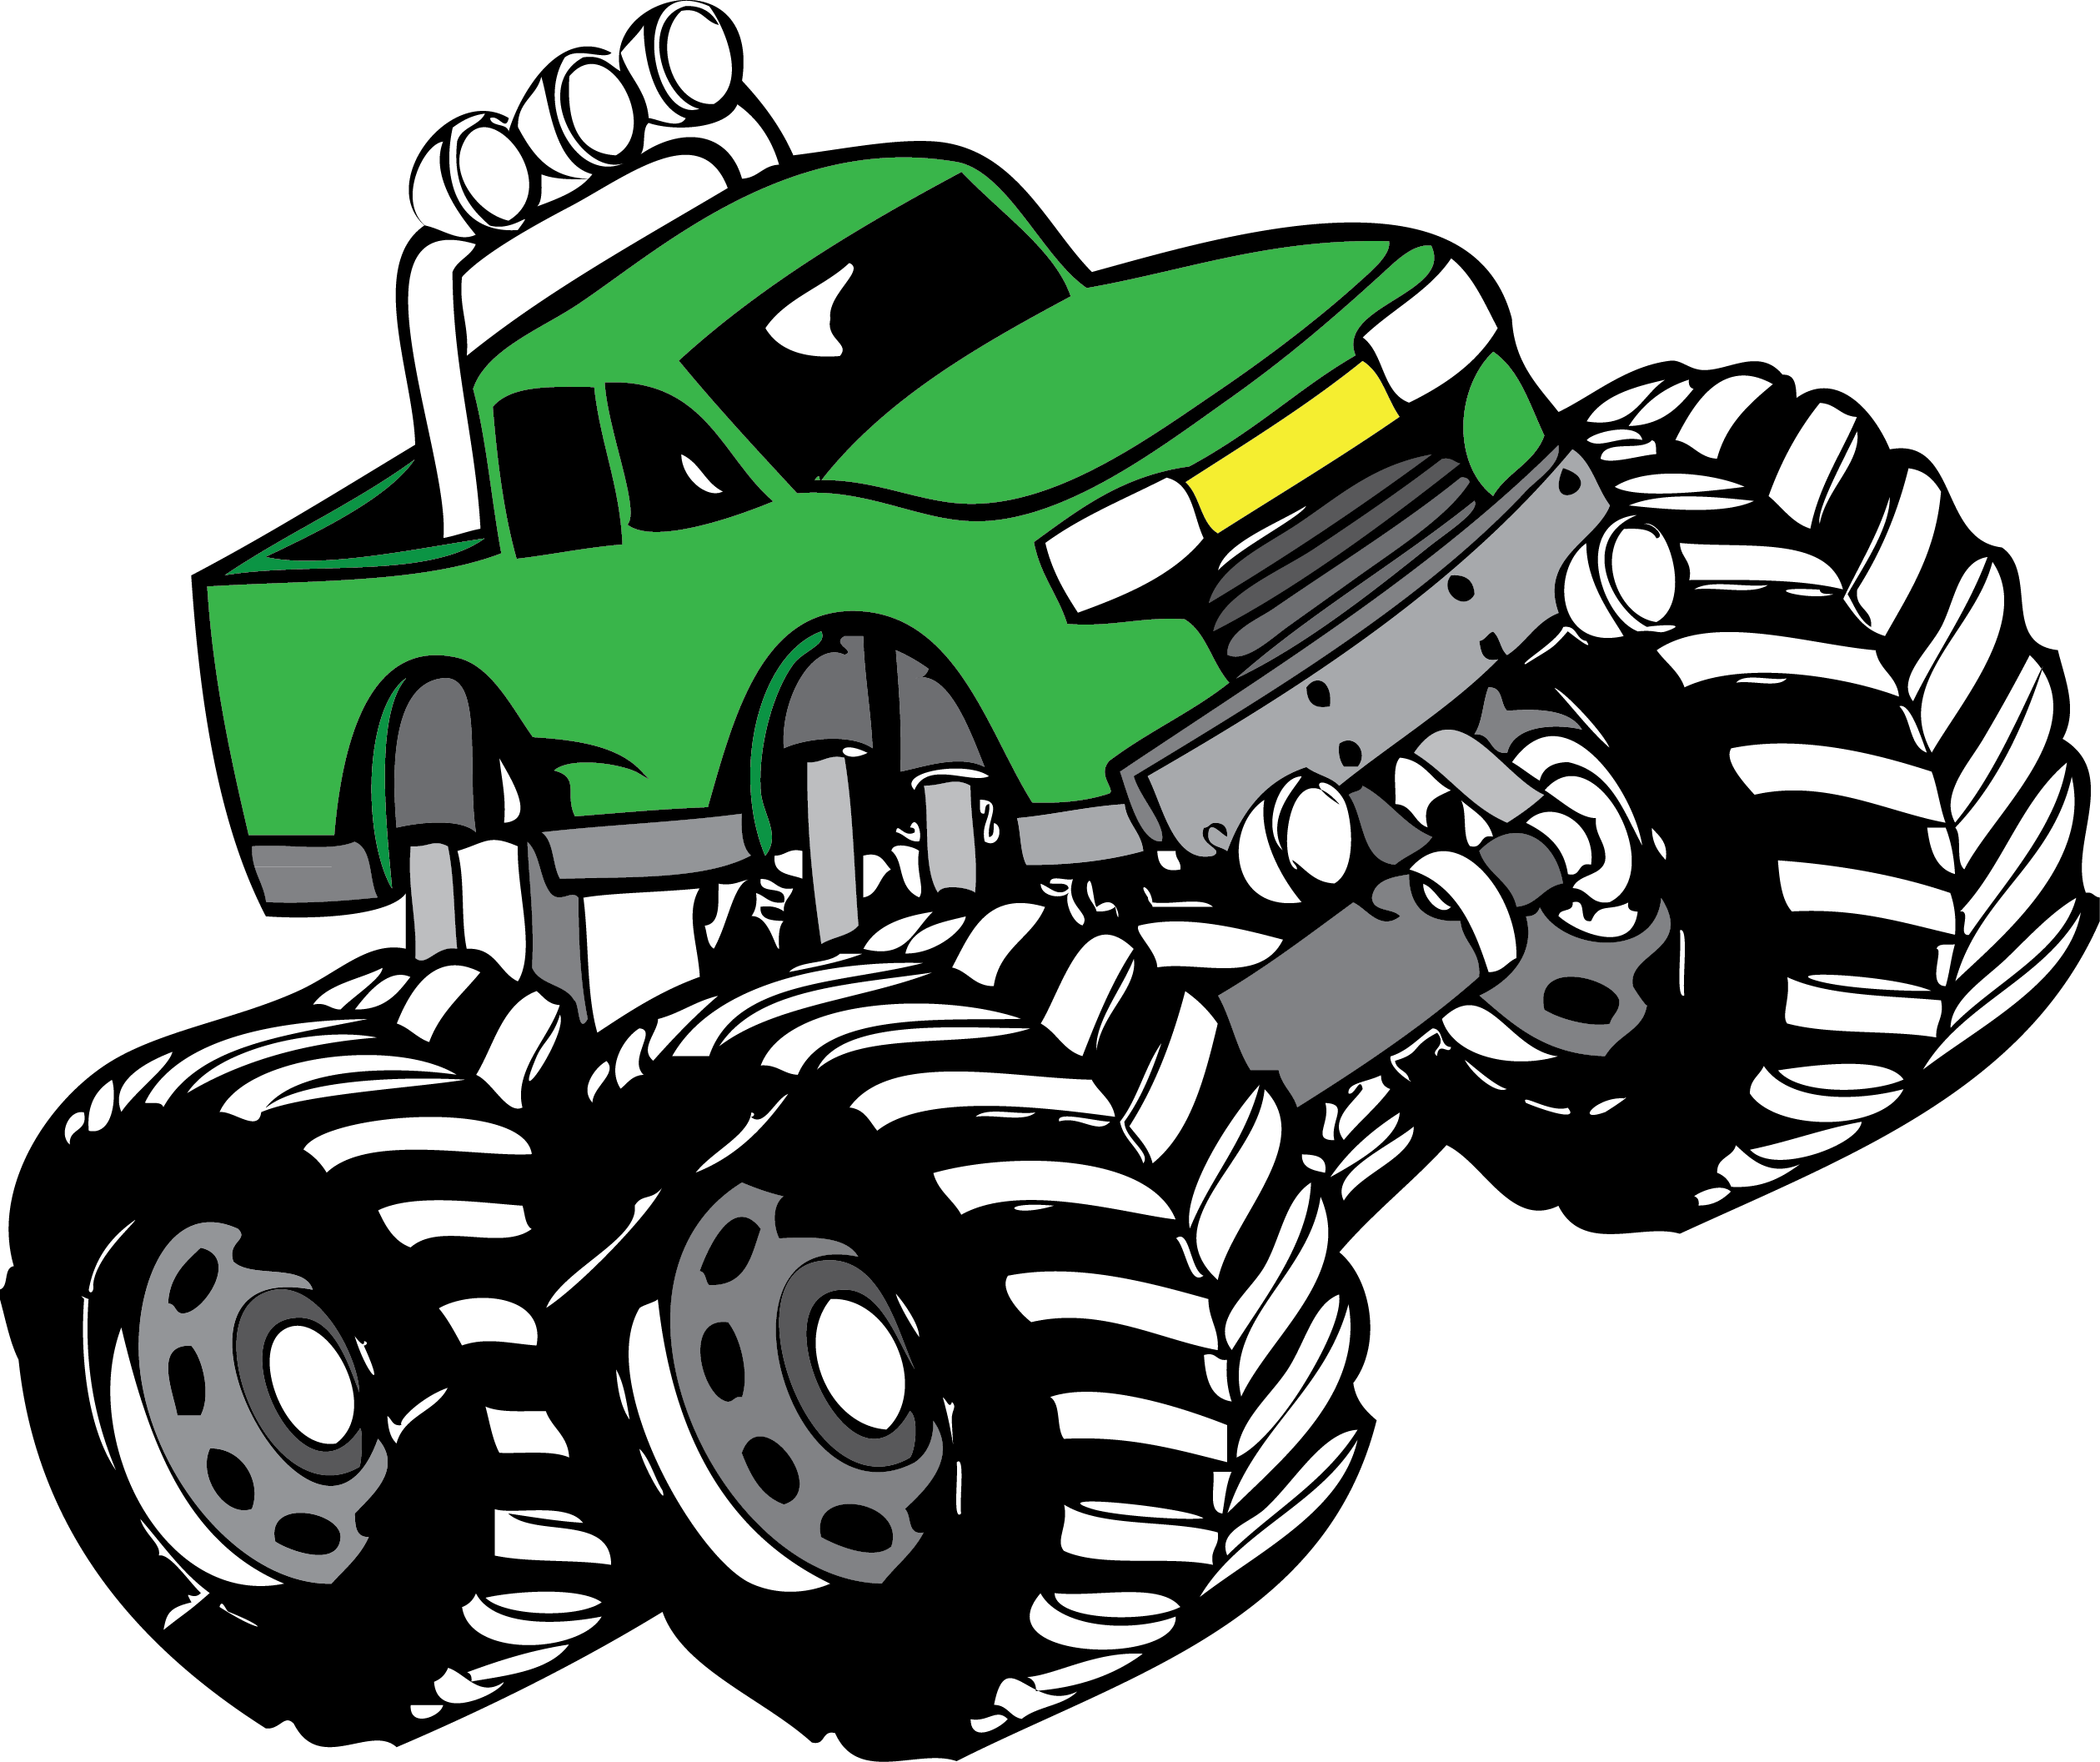 banner royalty free Trucks drawing lifted truck. Monster clip art pinterest.